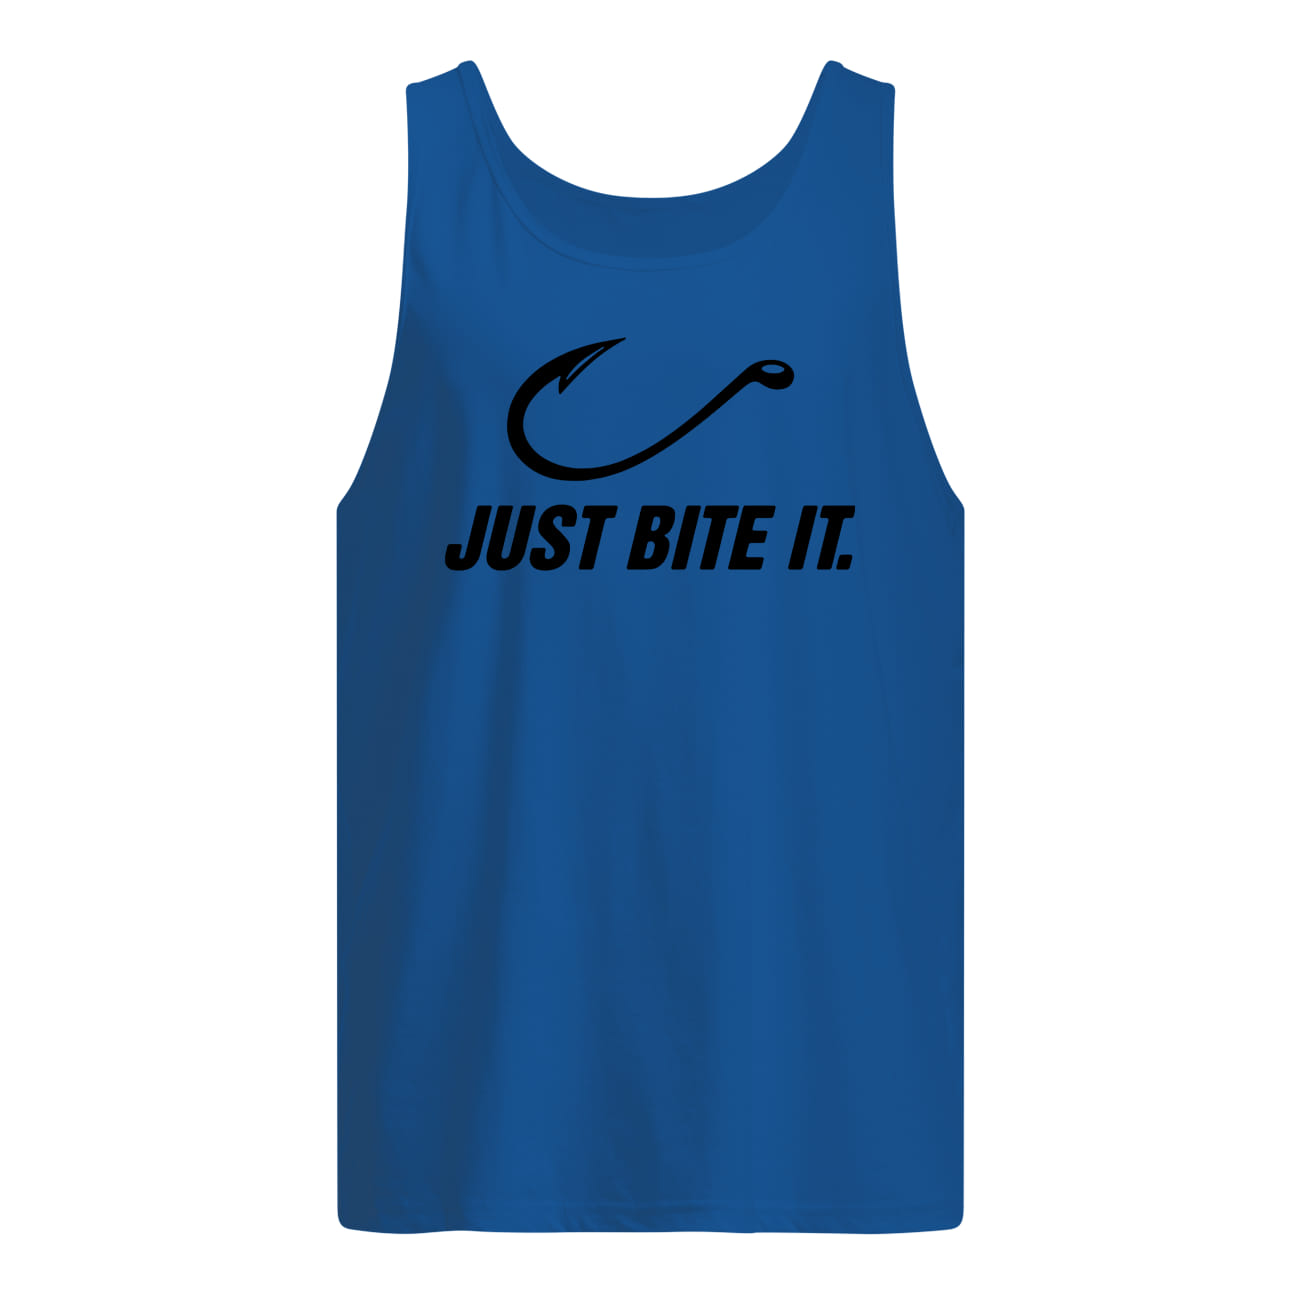 Fishing just bite it tank top